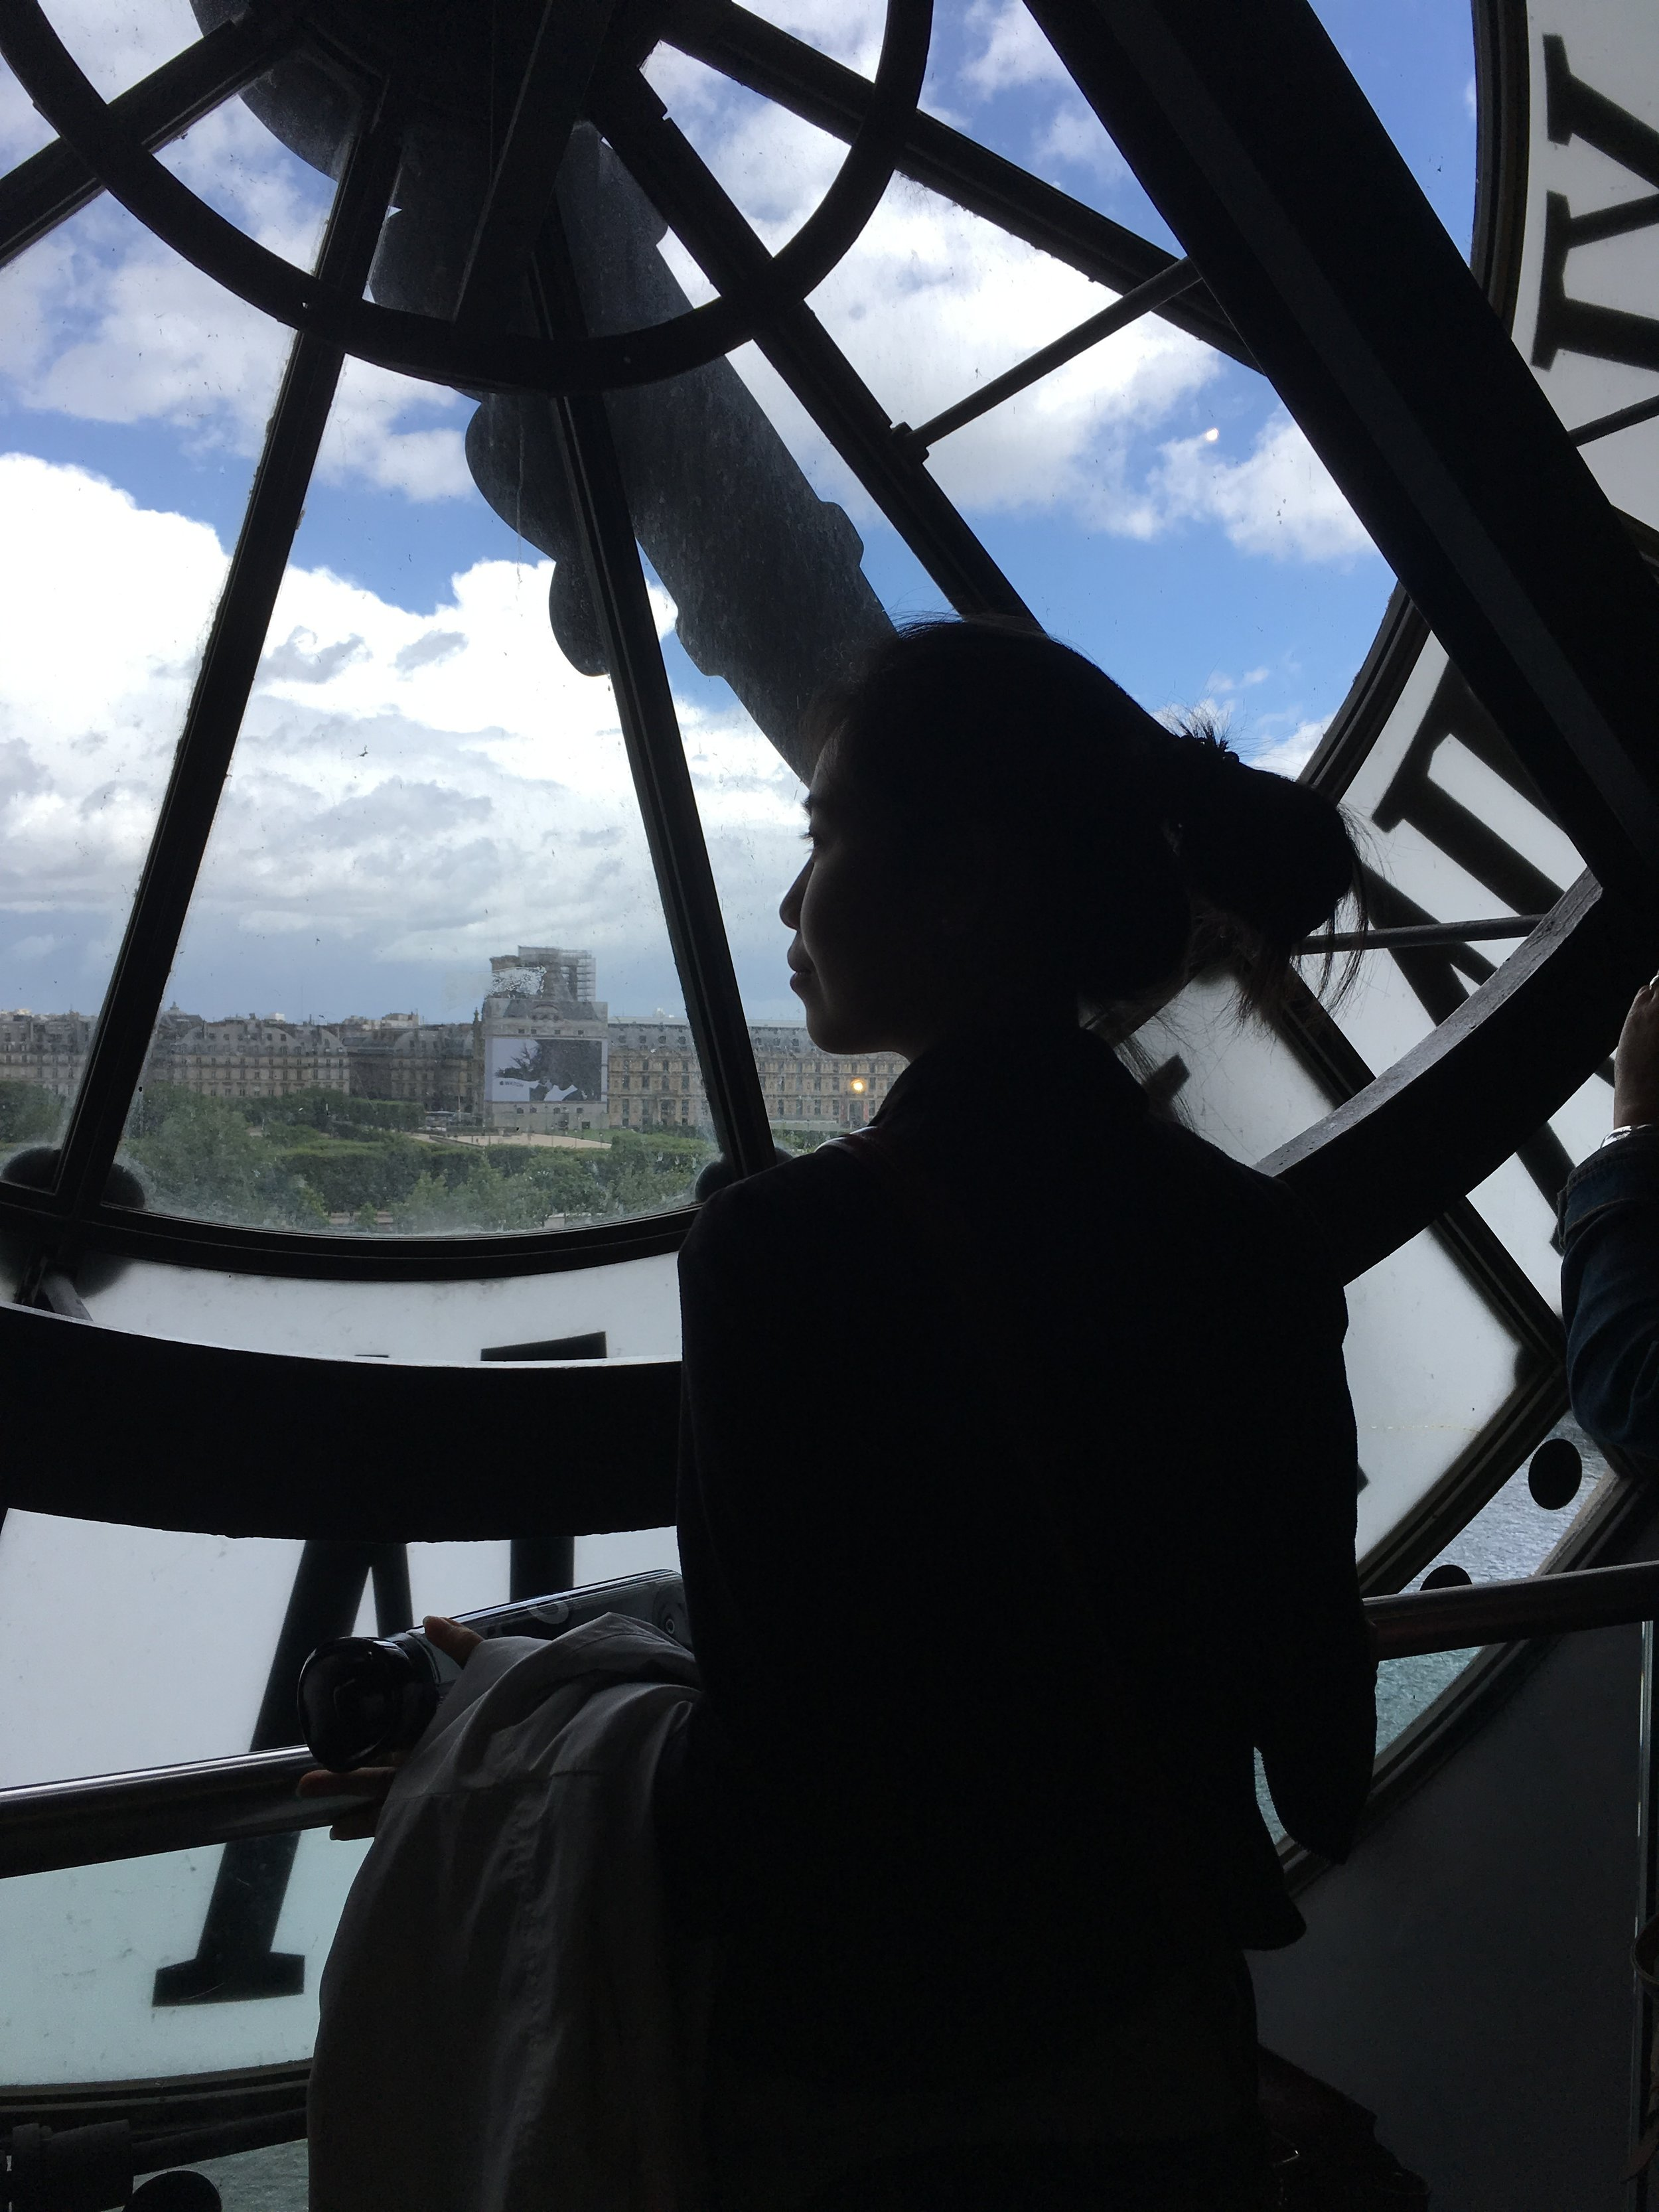 Alice in silhouette looking out onto to the Seine river towards the Louvre from the behind the famous Orsay clock.